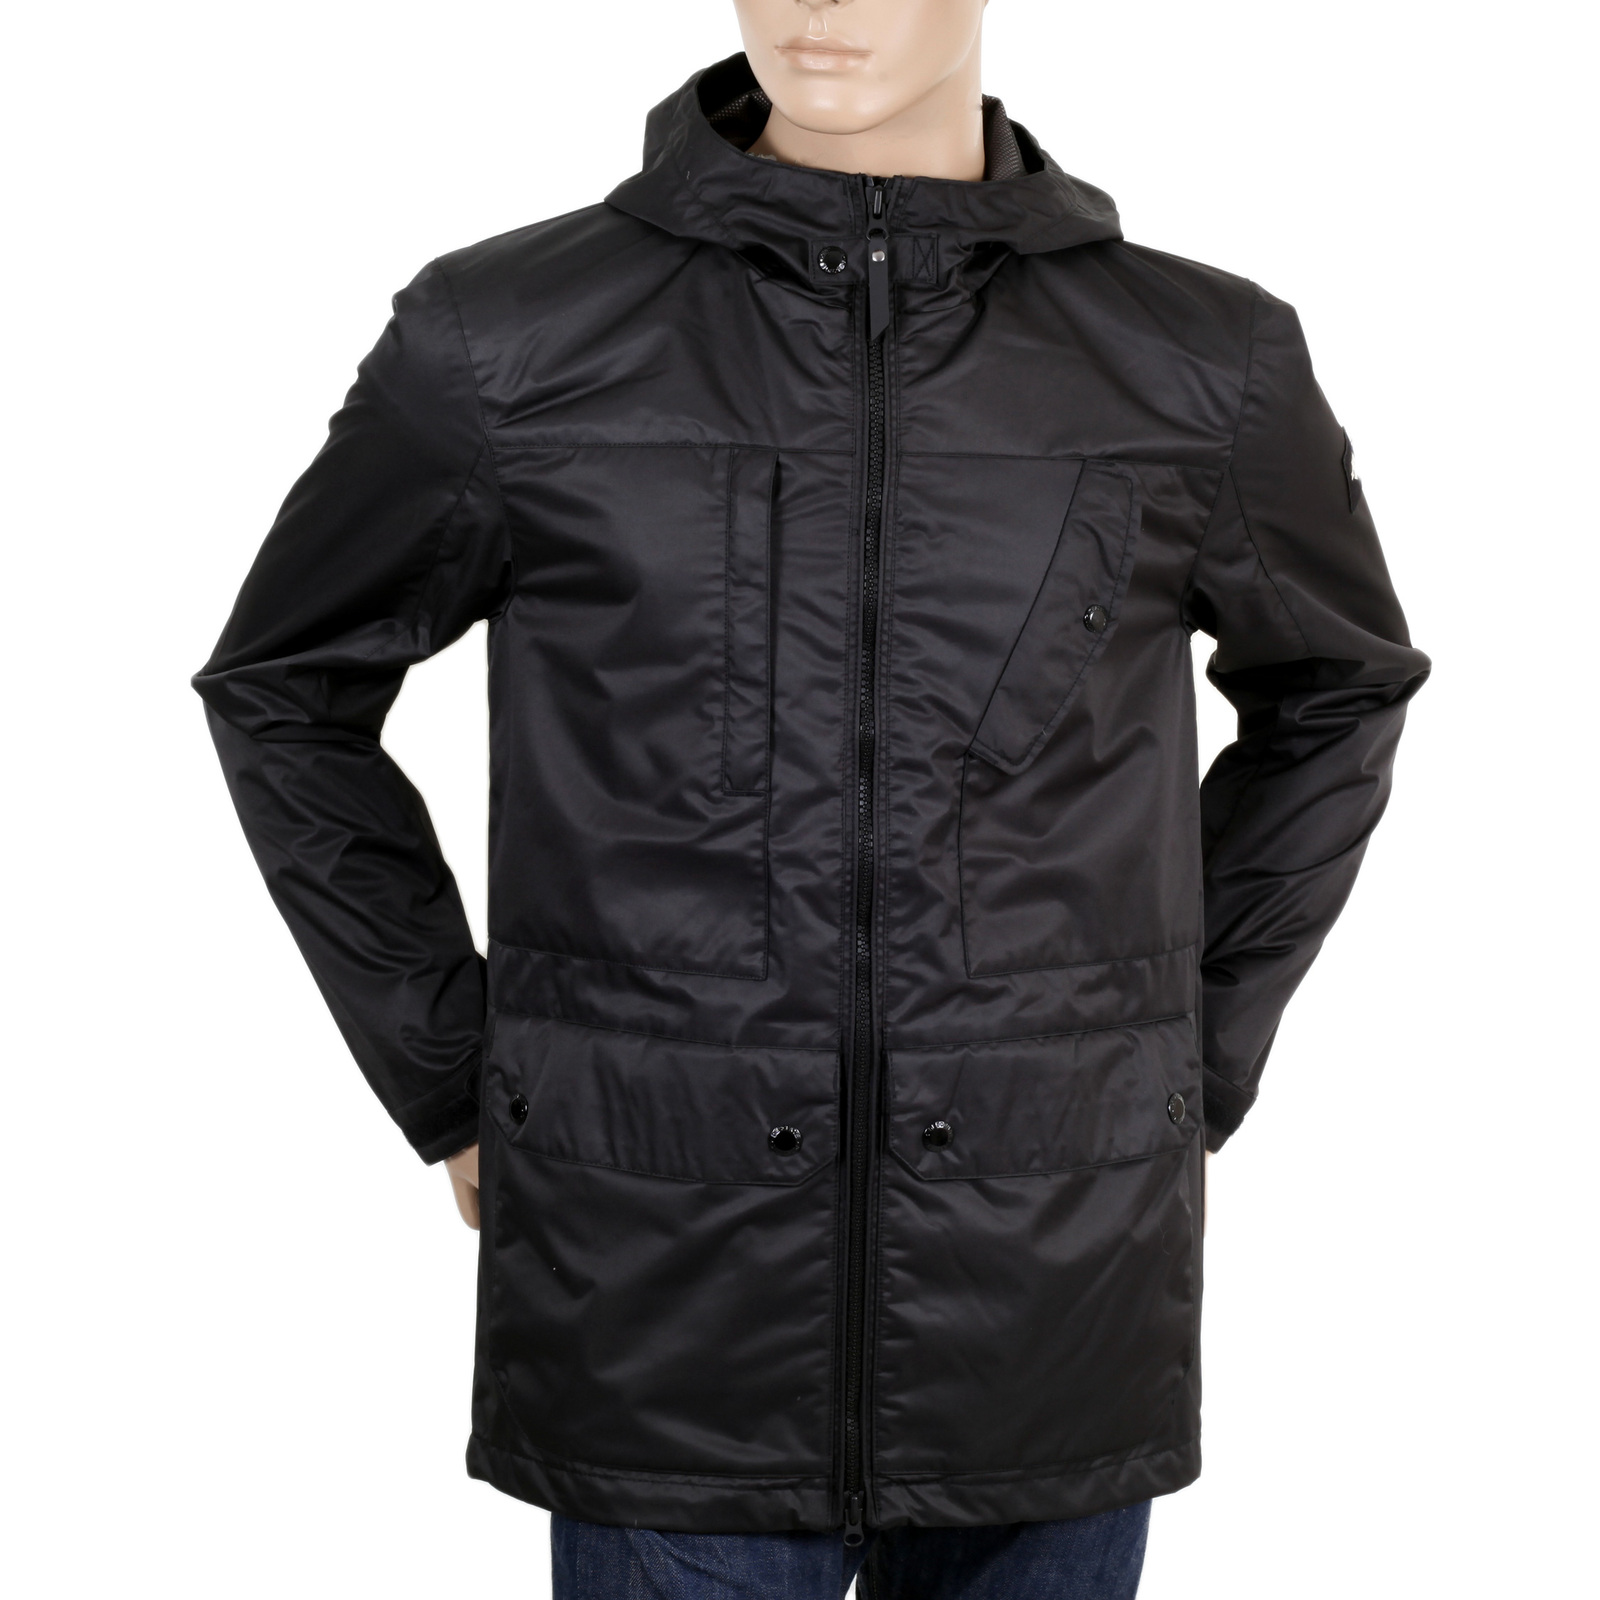 385e6f71b1c Shop from a huge variety of Jackets for Men at Togged